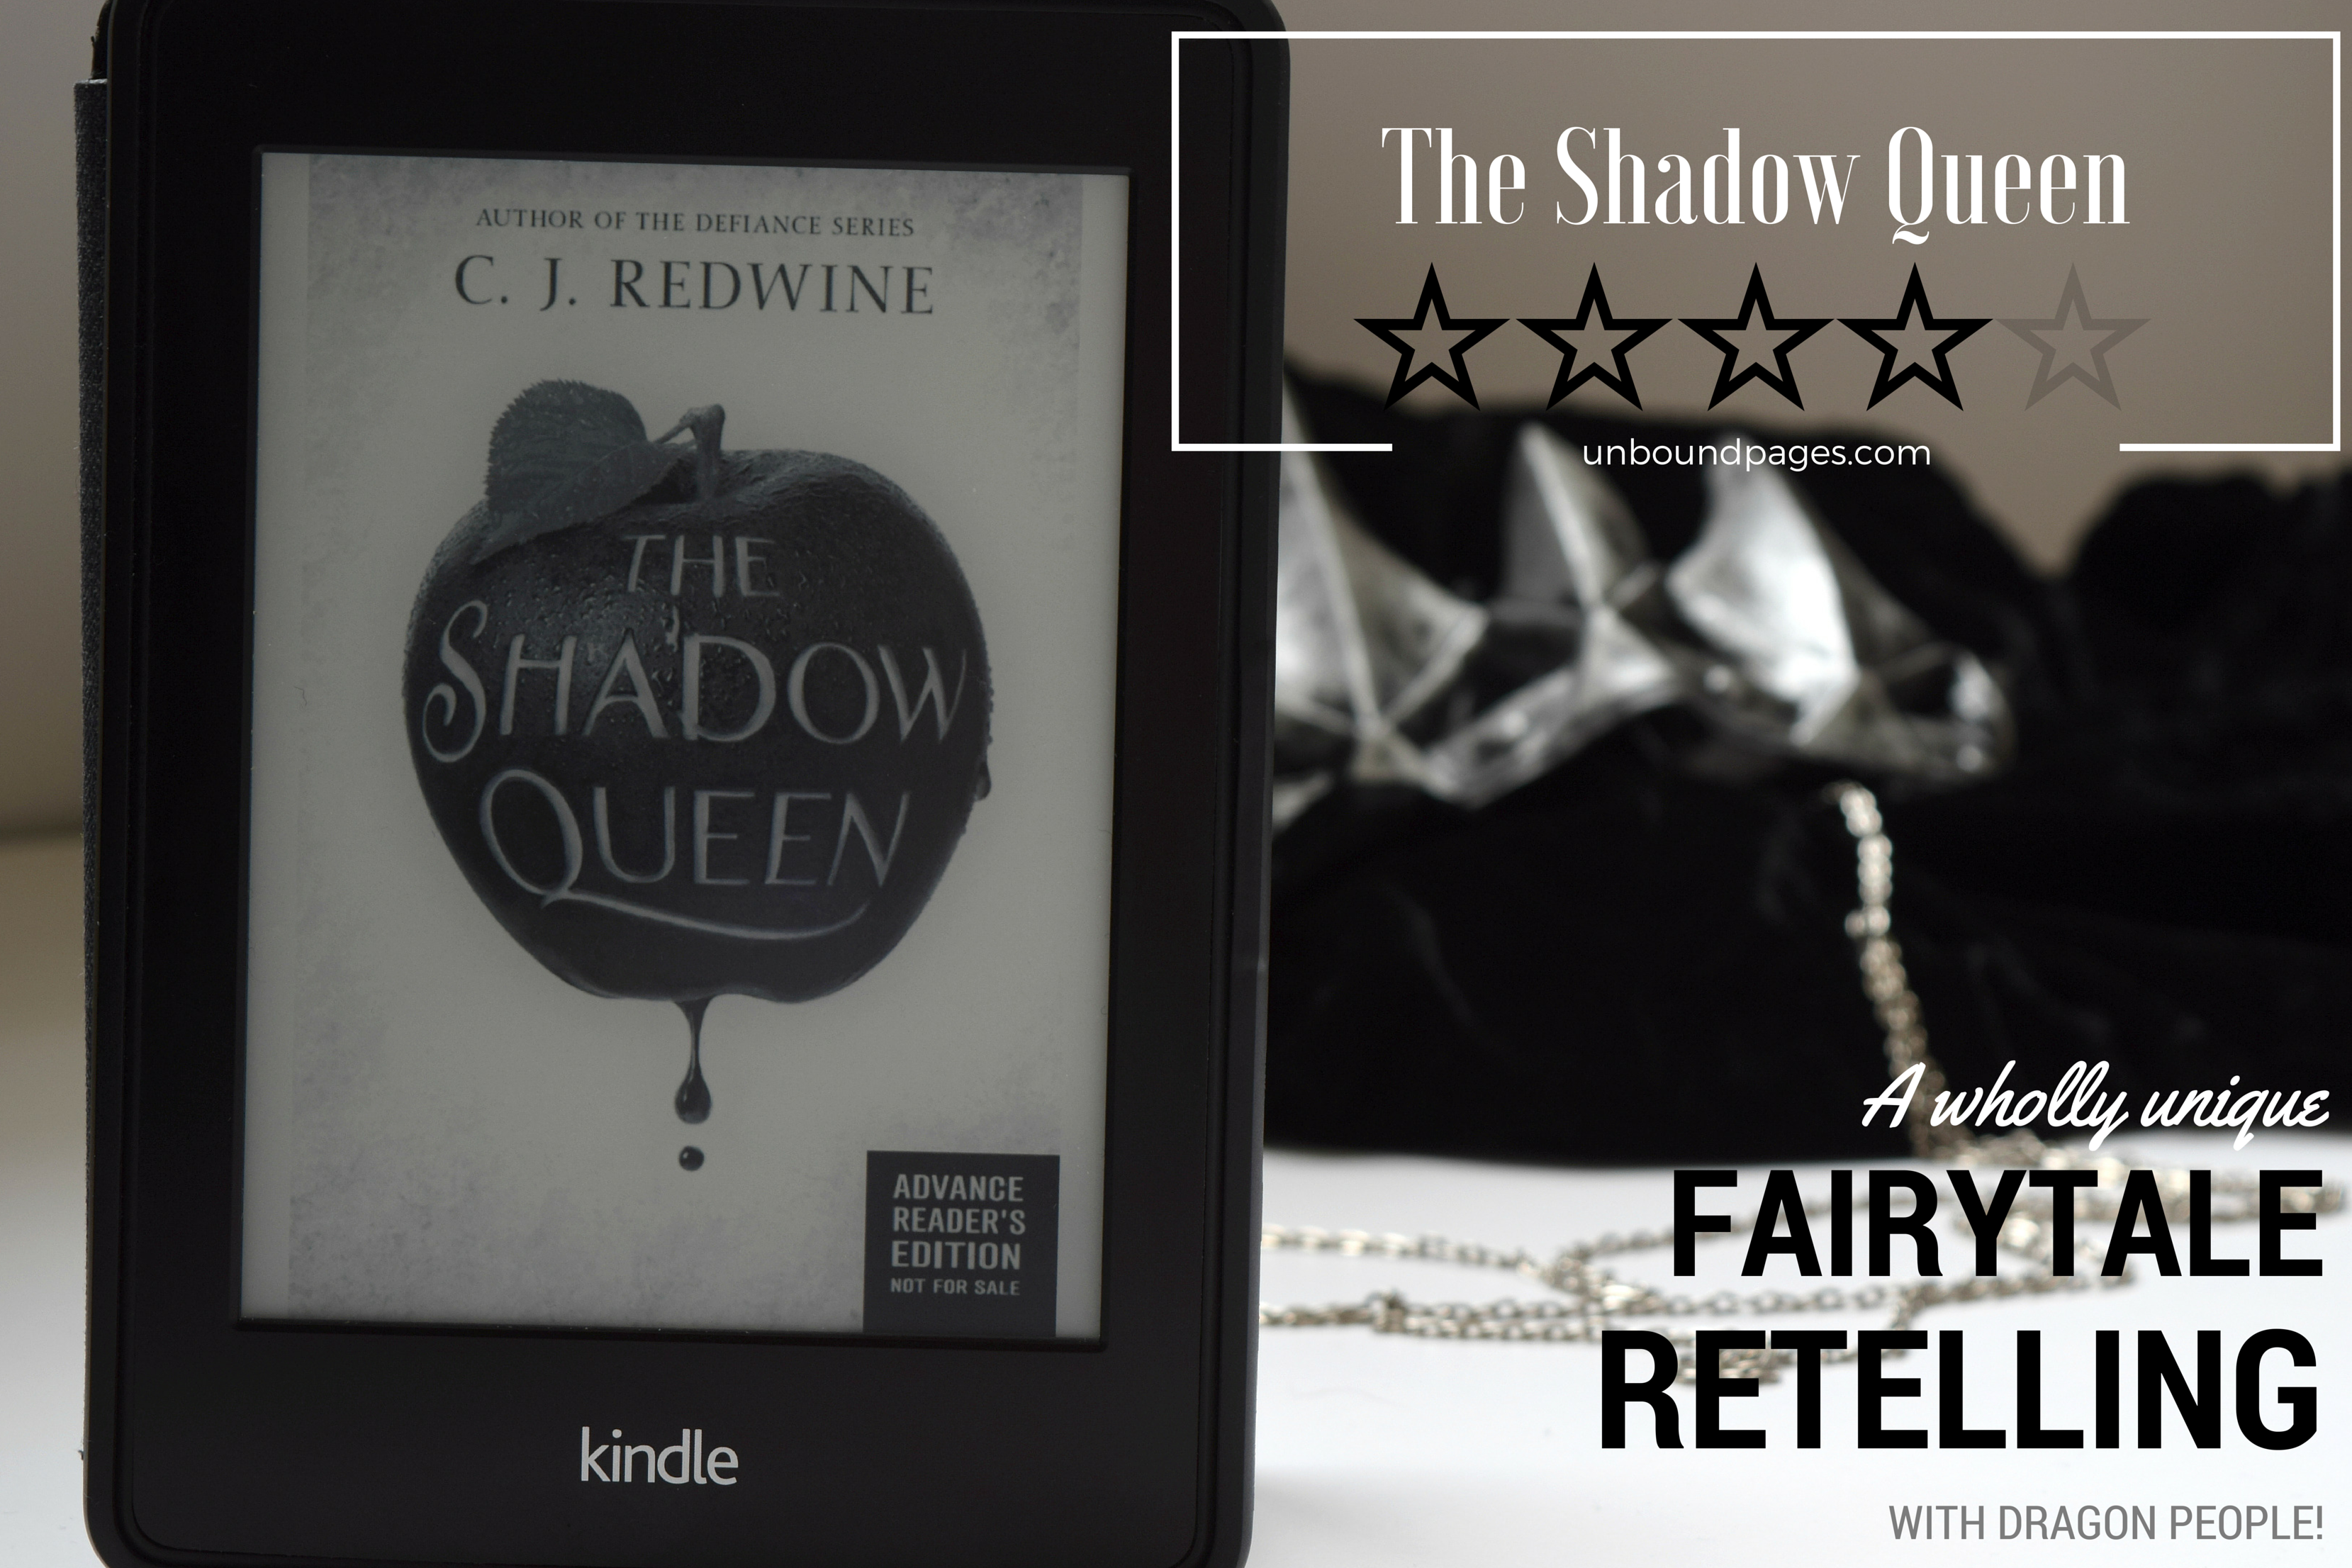 The Shadow Queen is a wholly unique fairtyale retelling with dragon people! - unboundpages.com